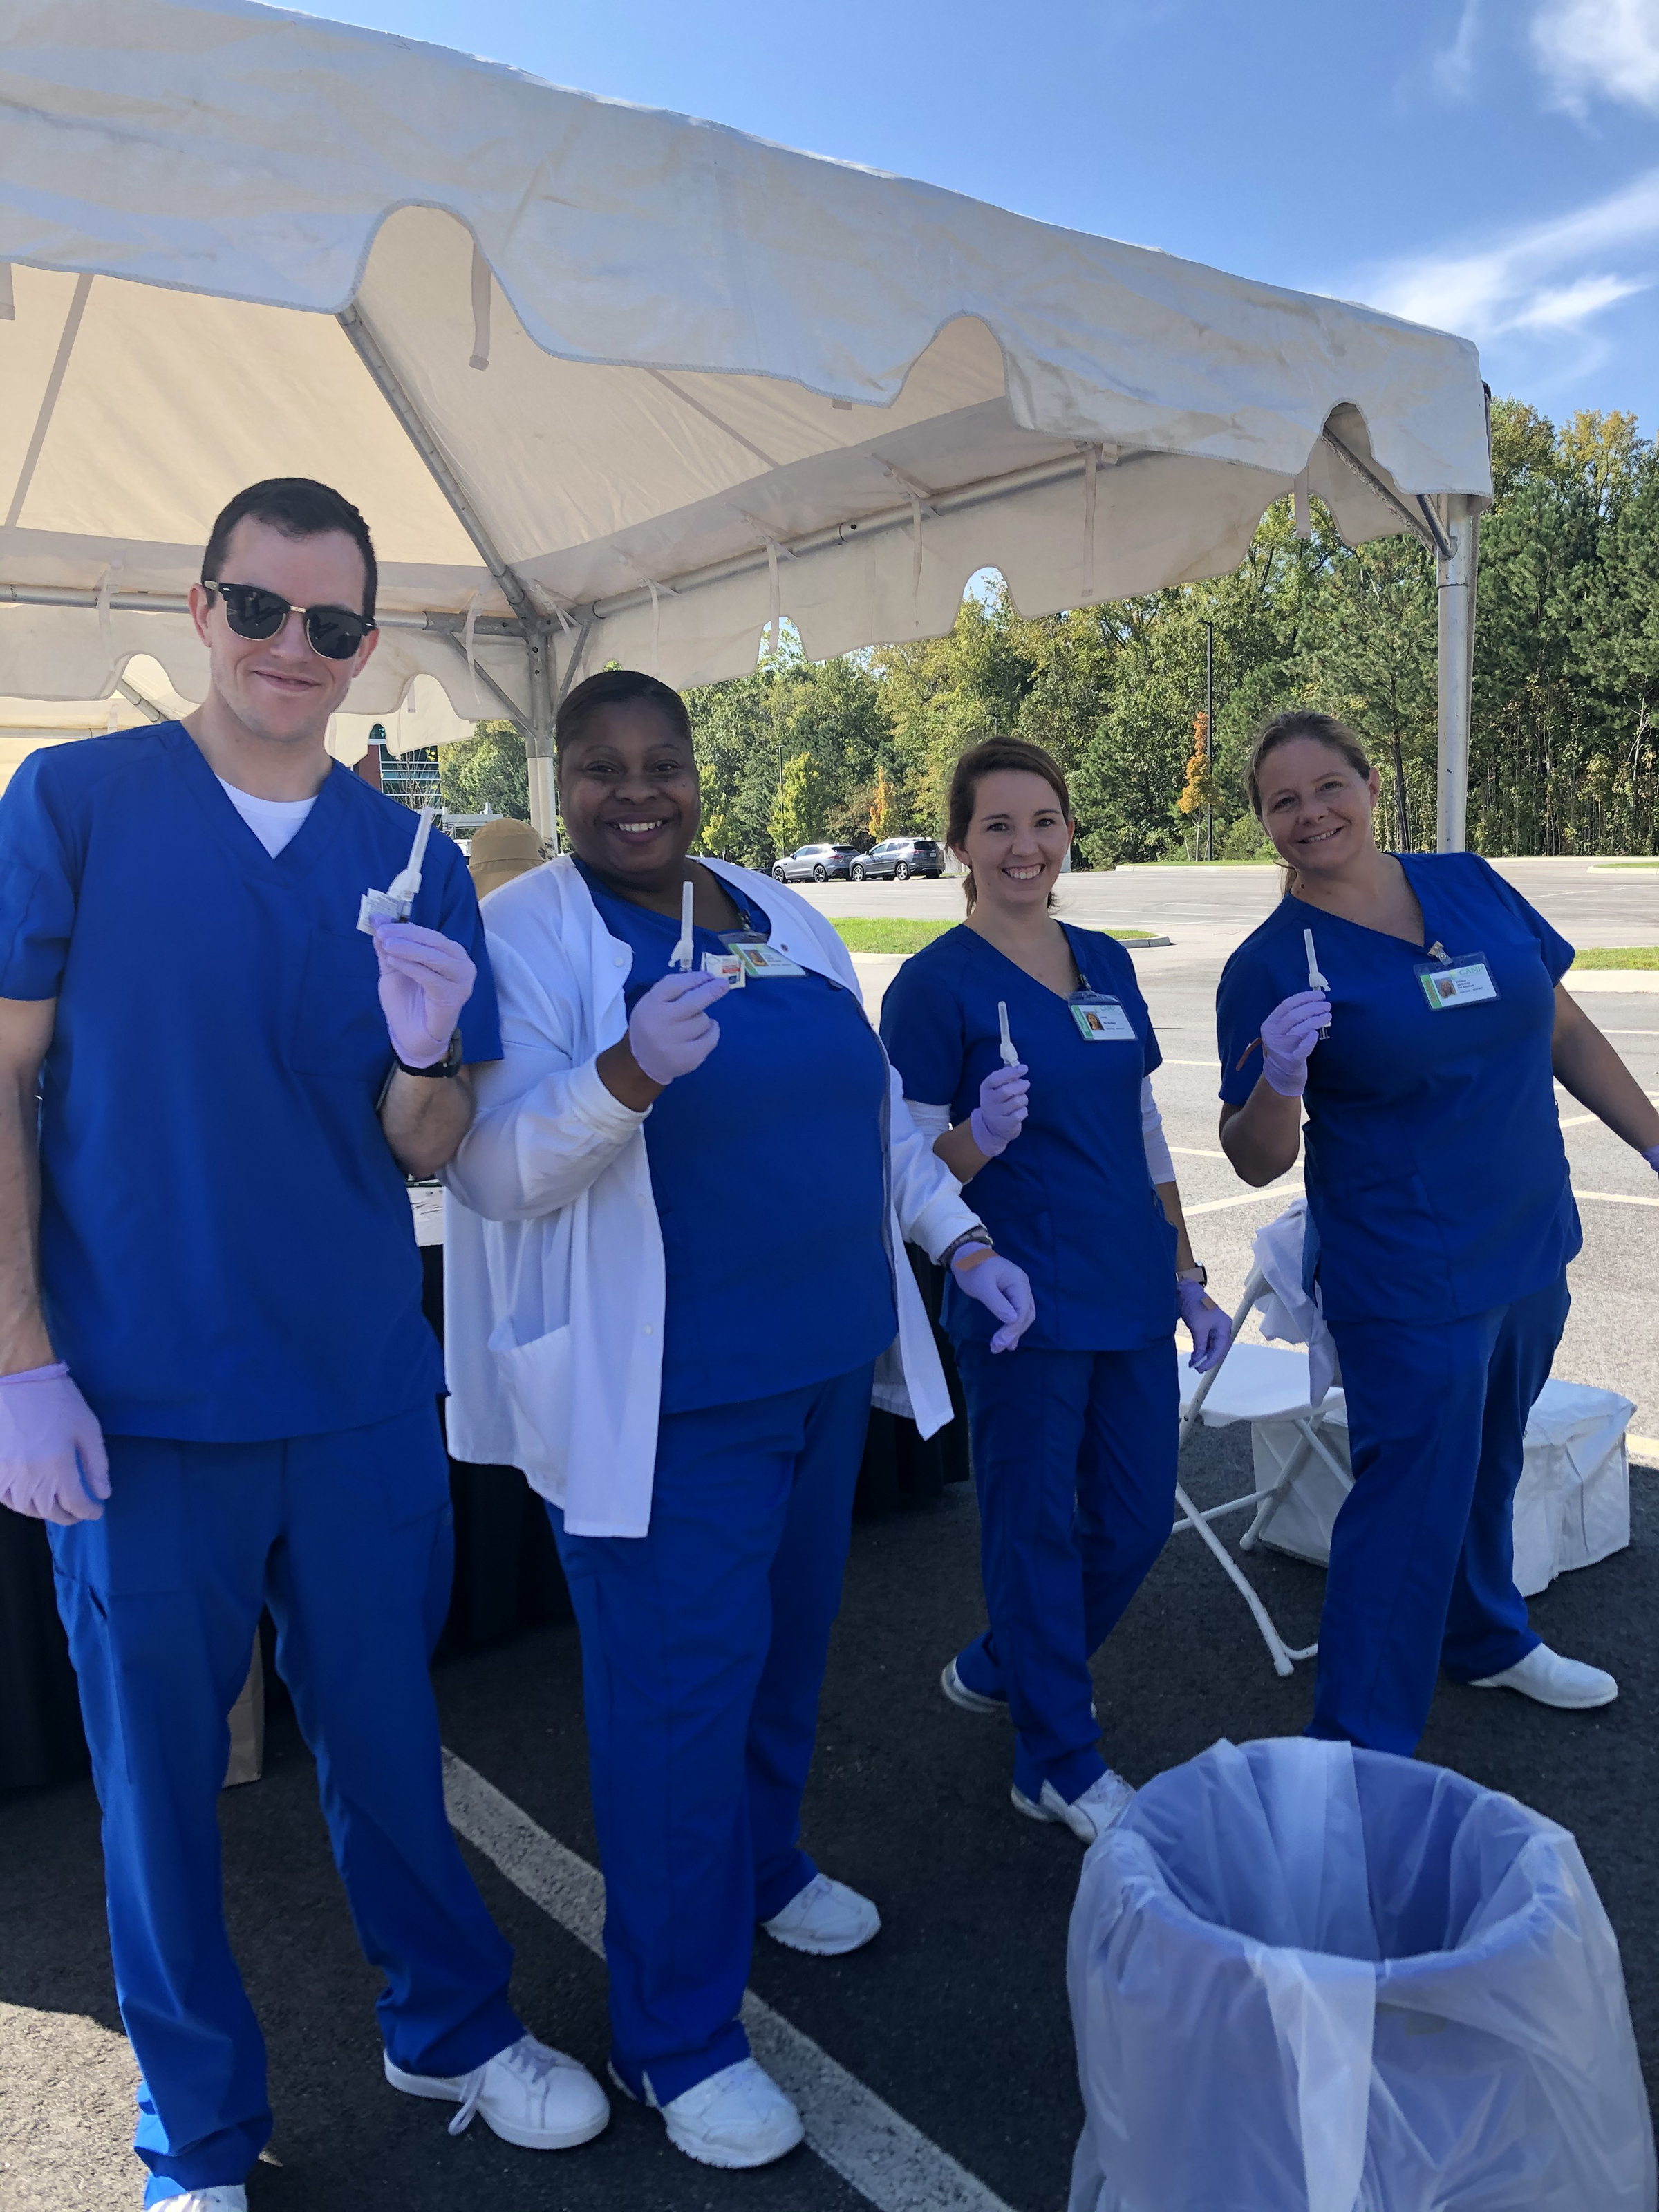 Camp nursing students partner with Sentara to promote health